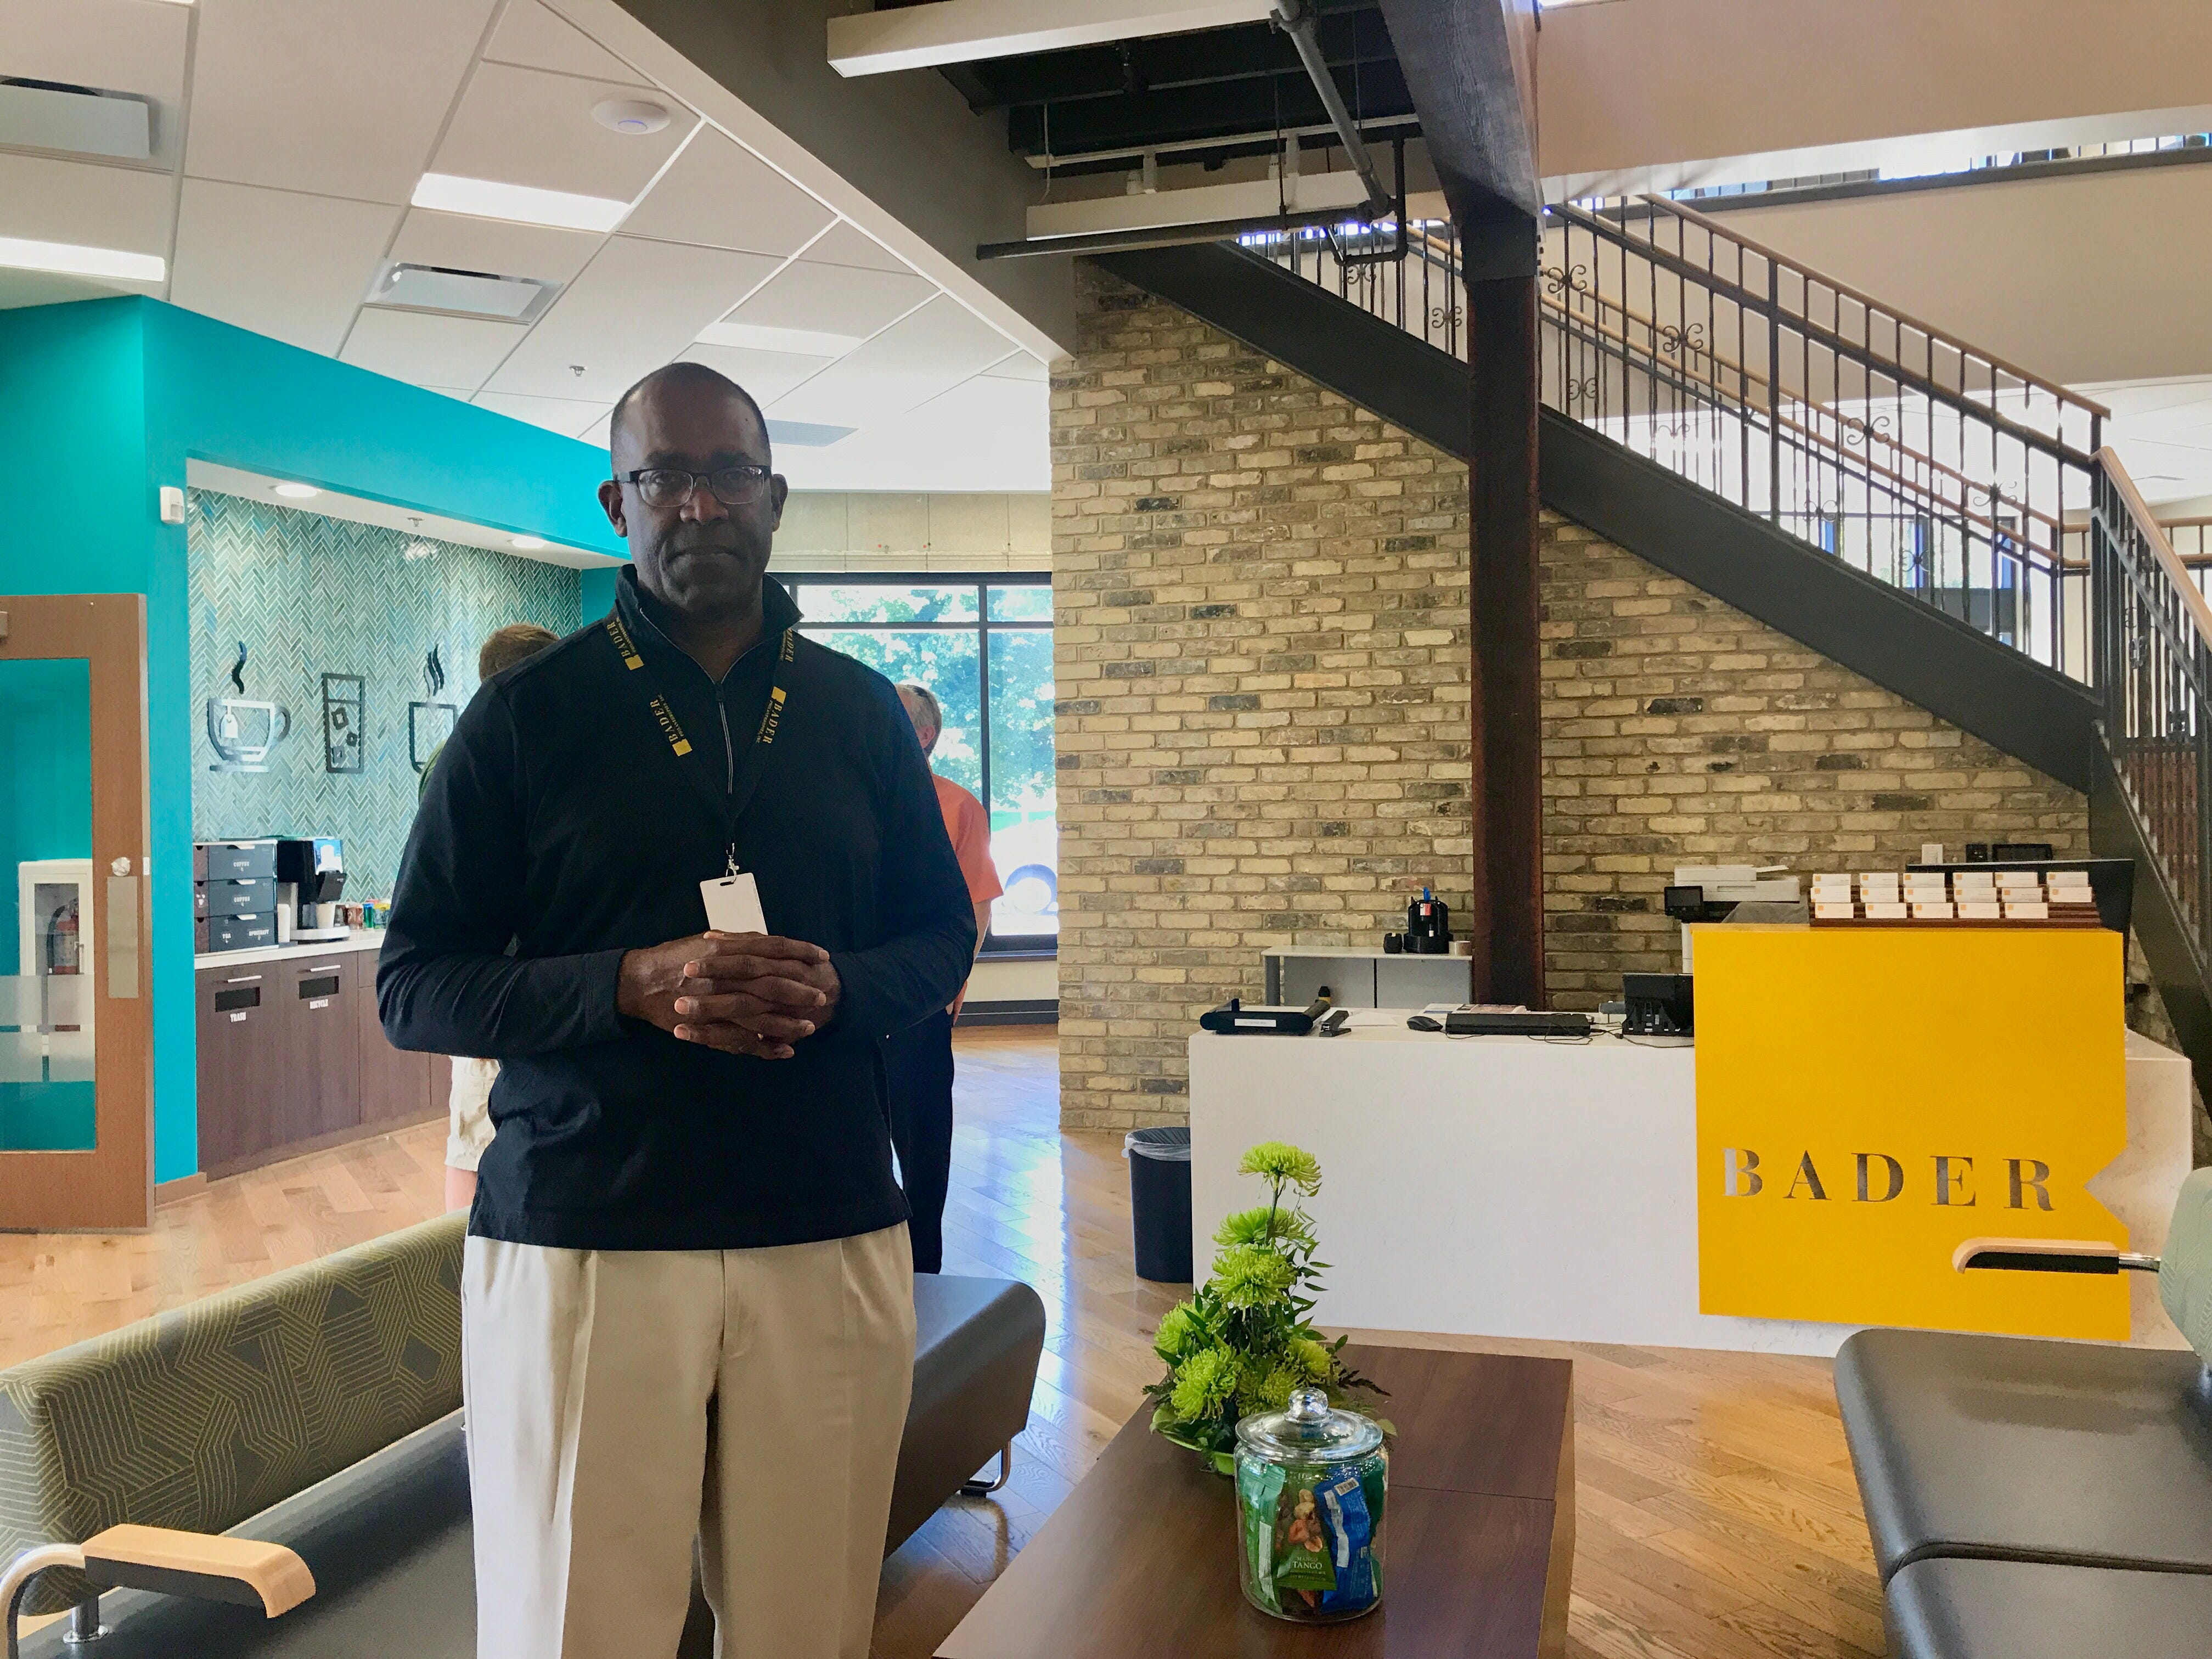 Vice President of Engagement for Bader Philanthropies Frank Cumberbatch is pictured in the organization's new headquarters on North King Drive during Doors Open Milwaukee 2018 on Sunday.